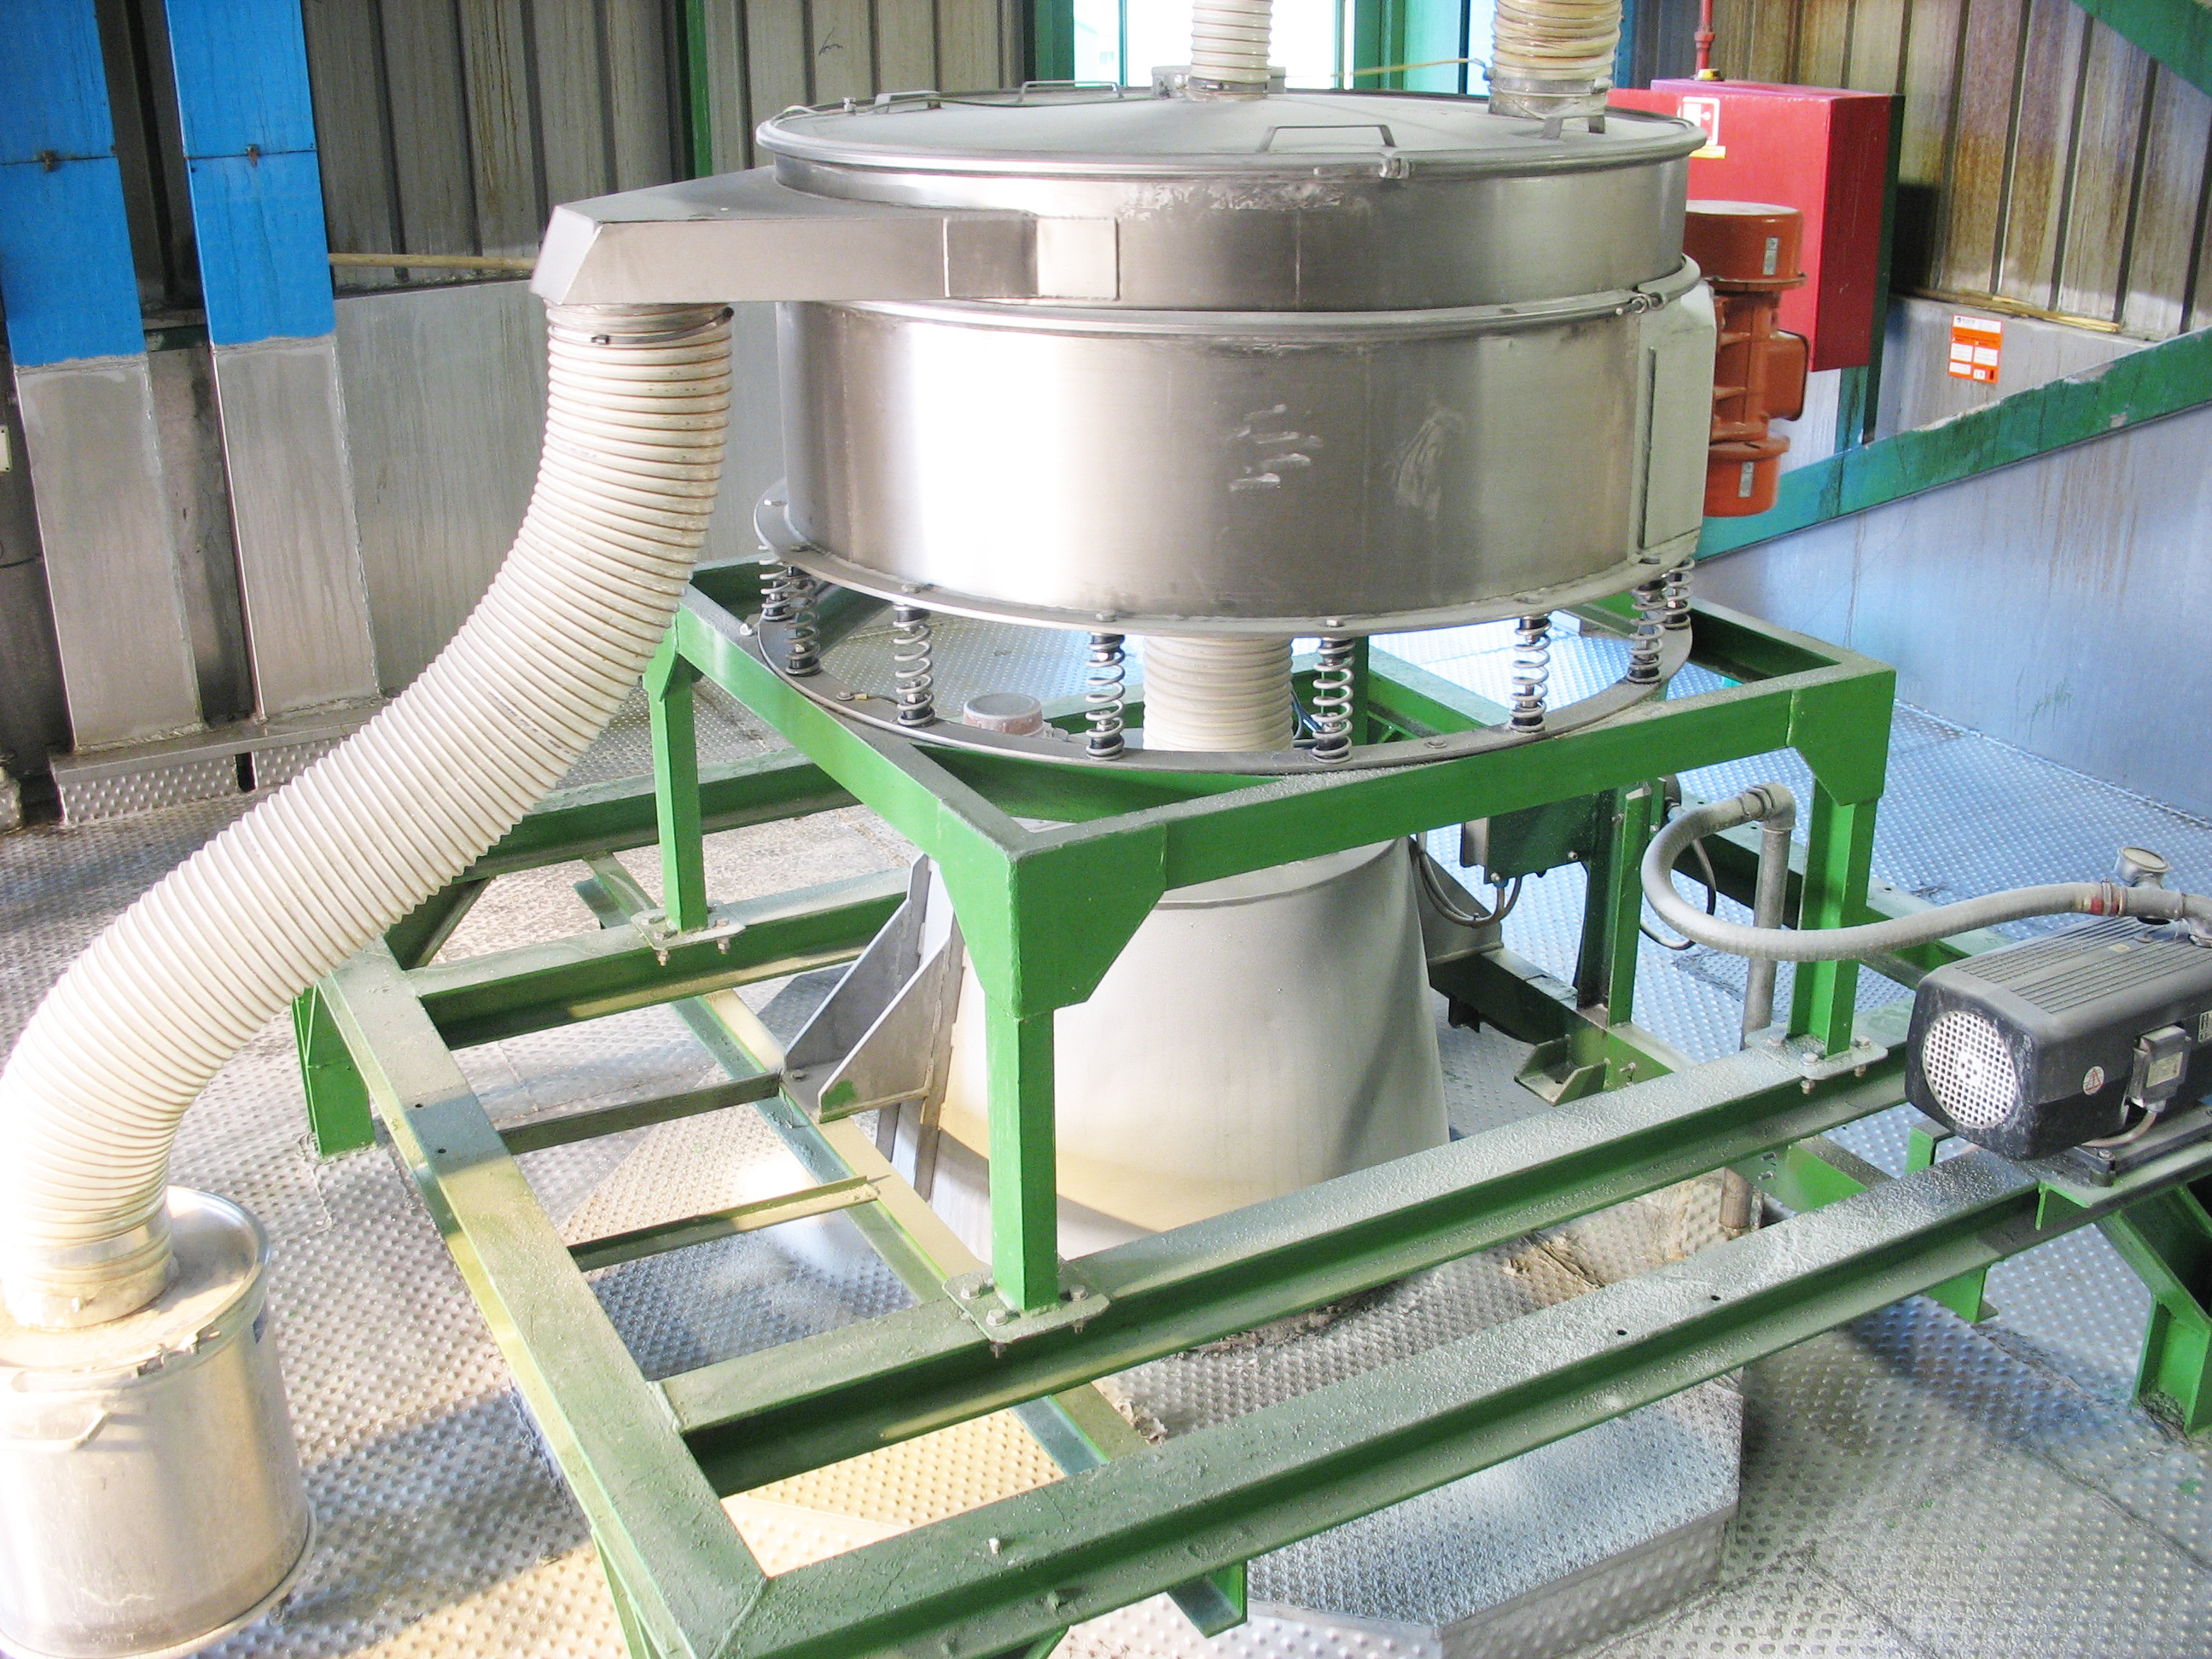 Sieving vibrating machine for solids